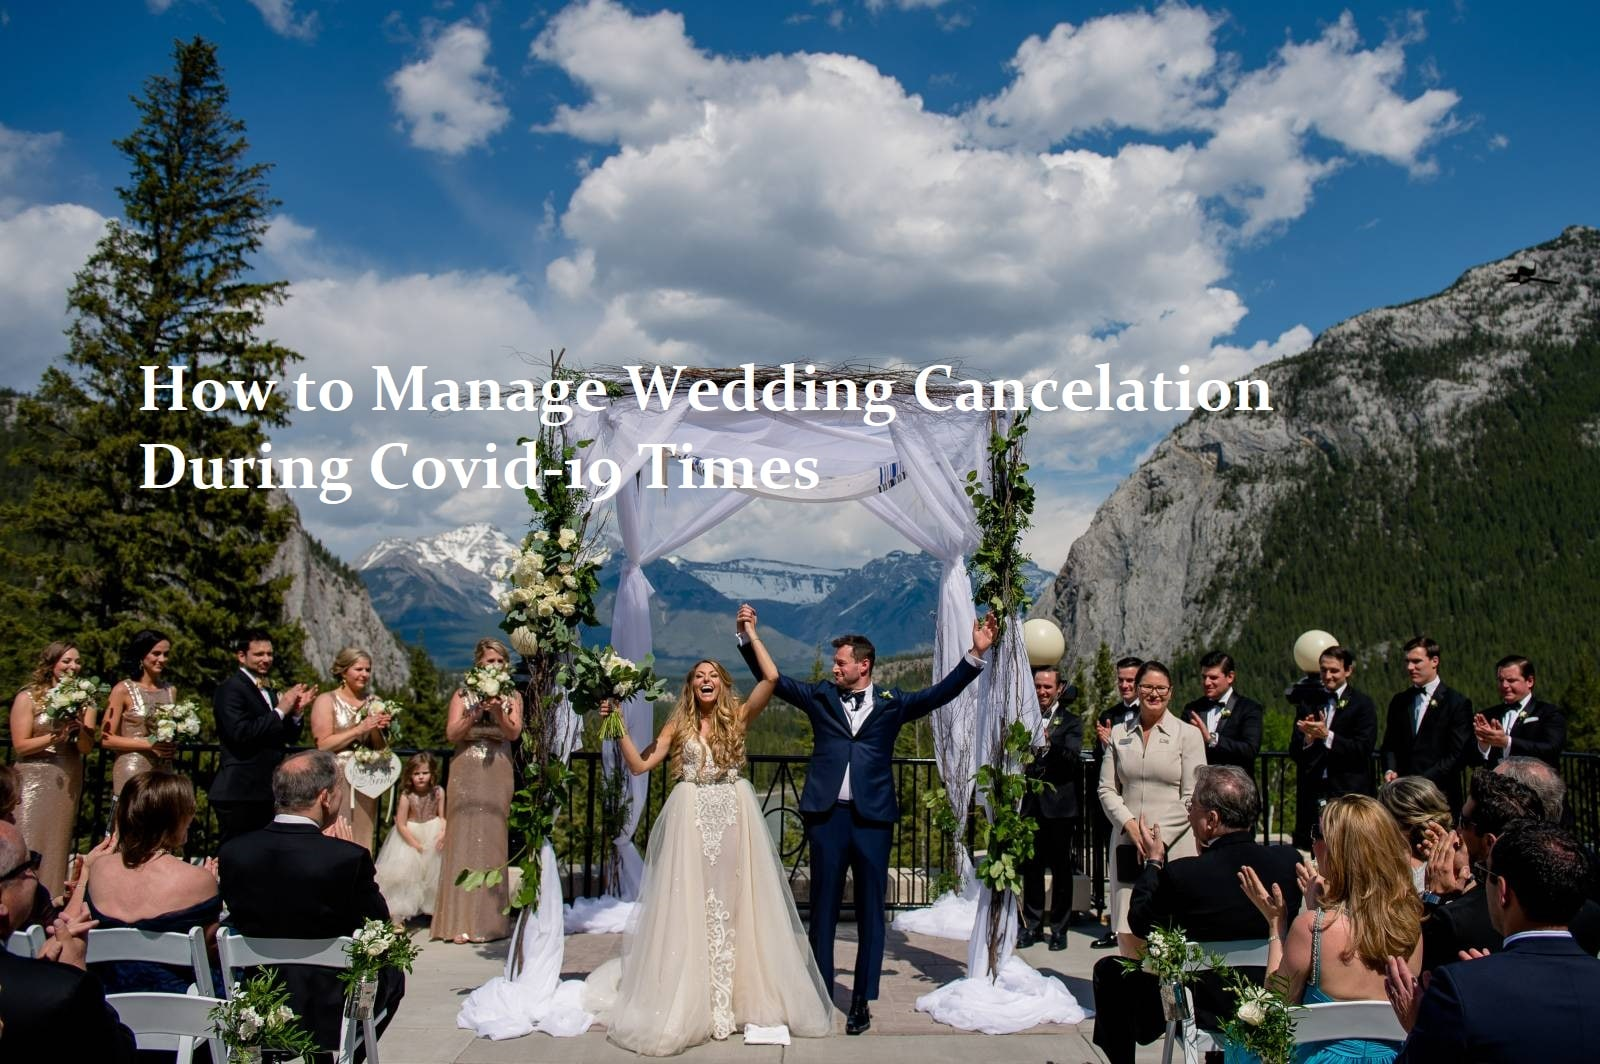 Wedding Cancelation during COVID Times